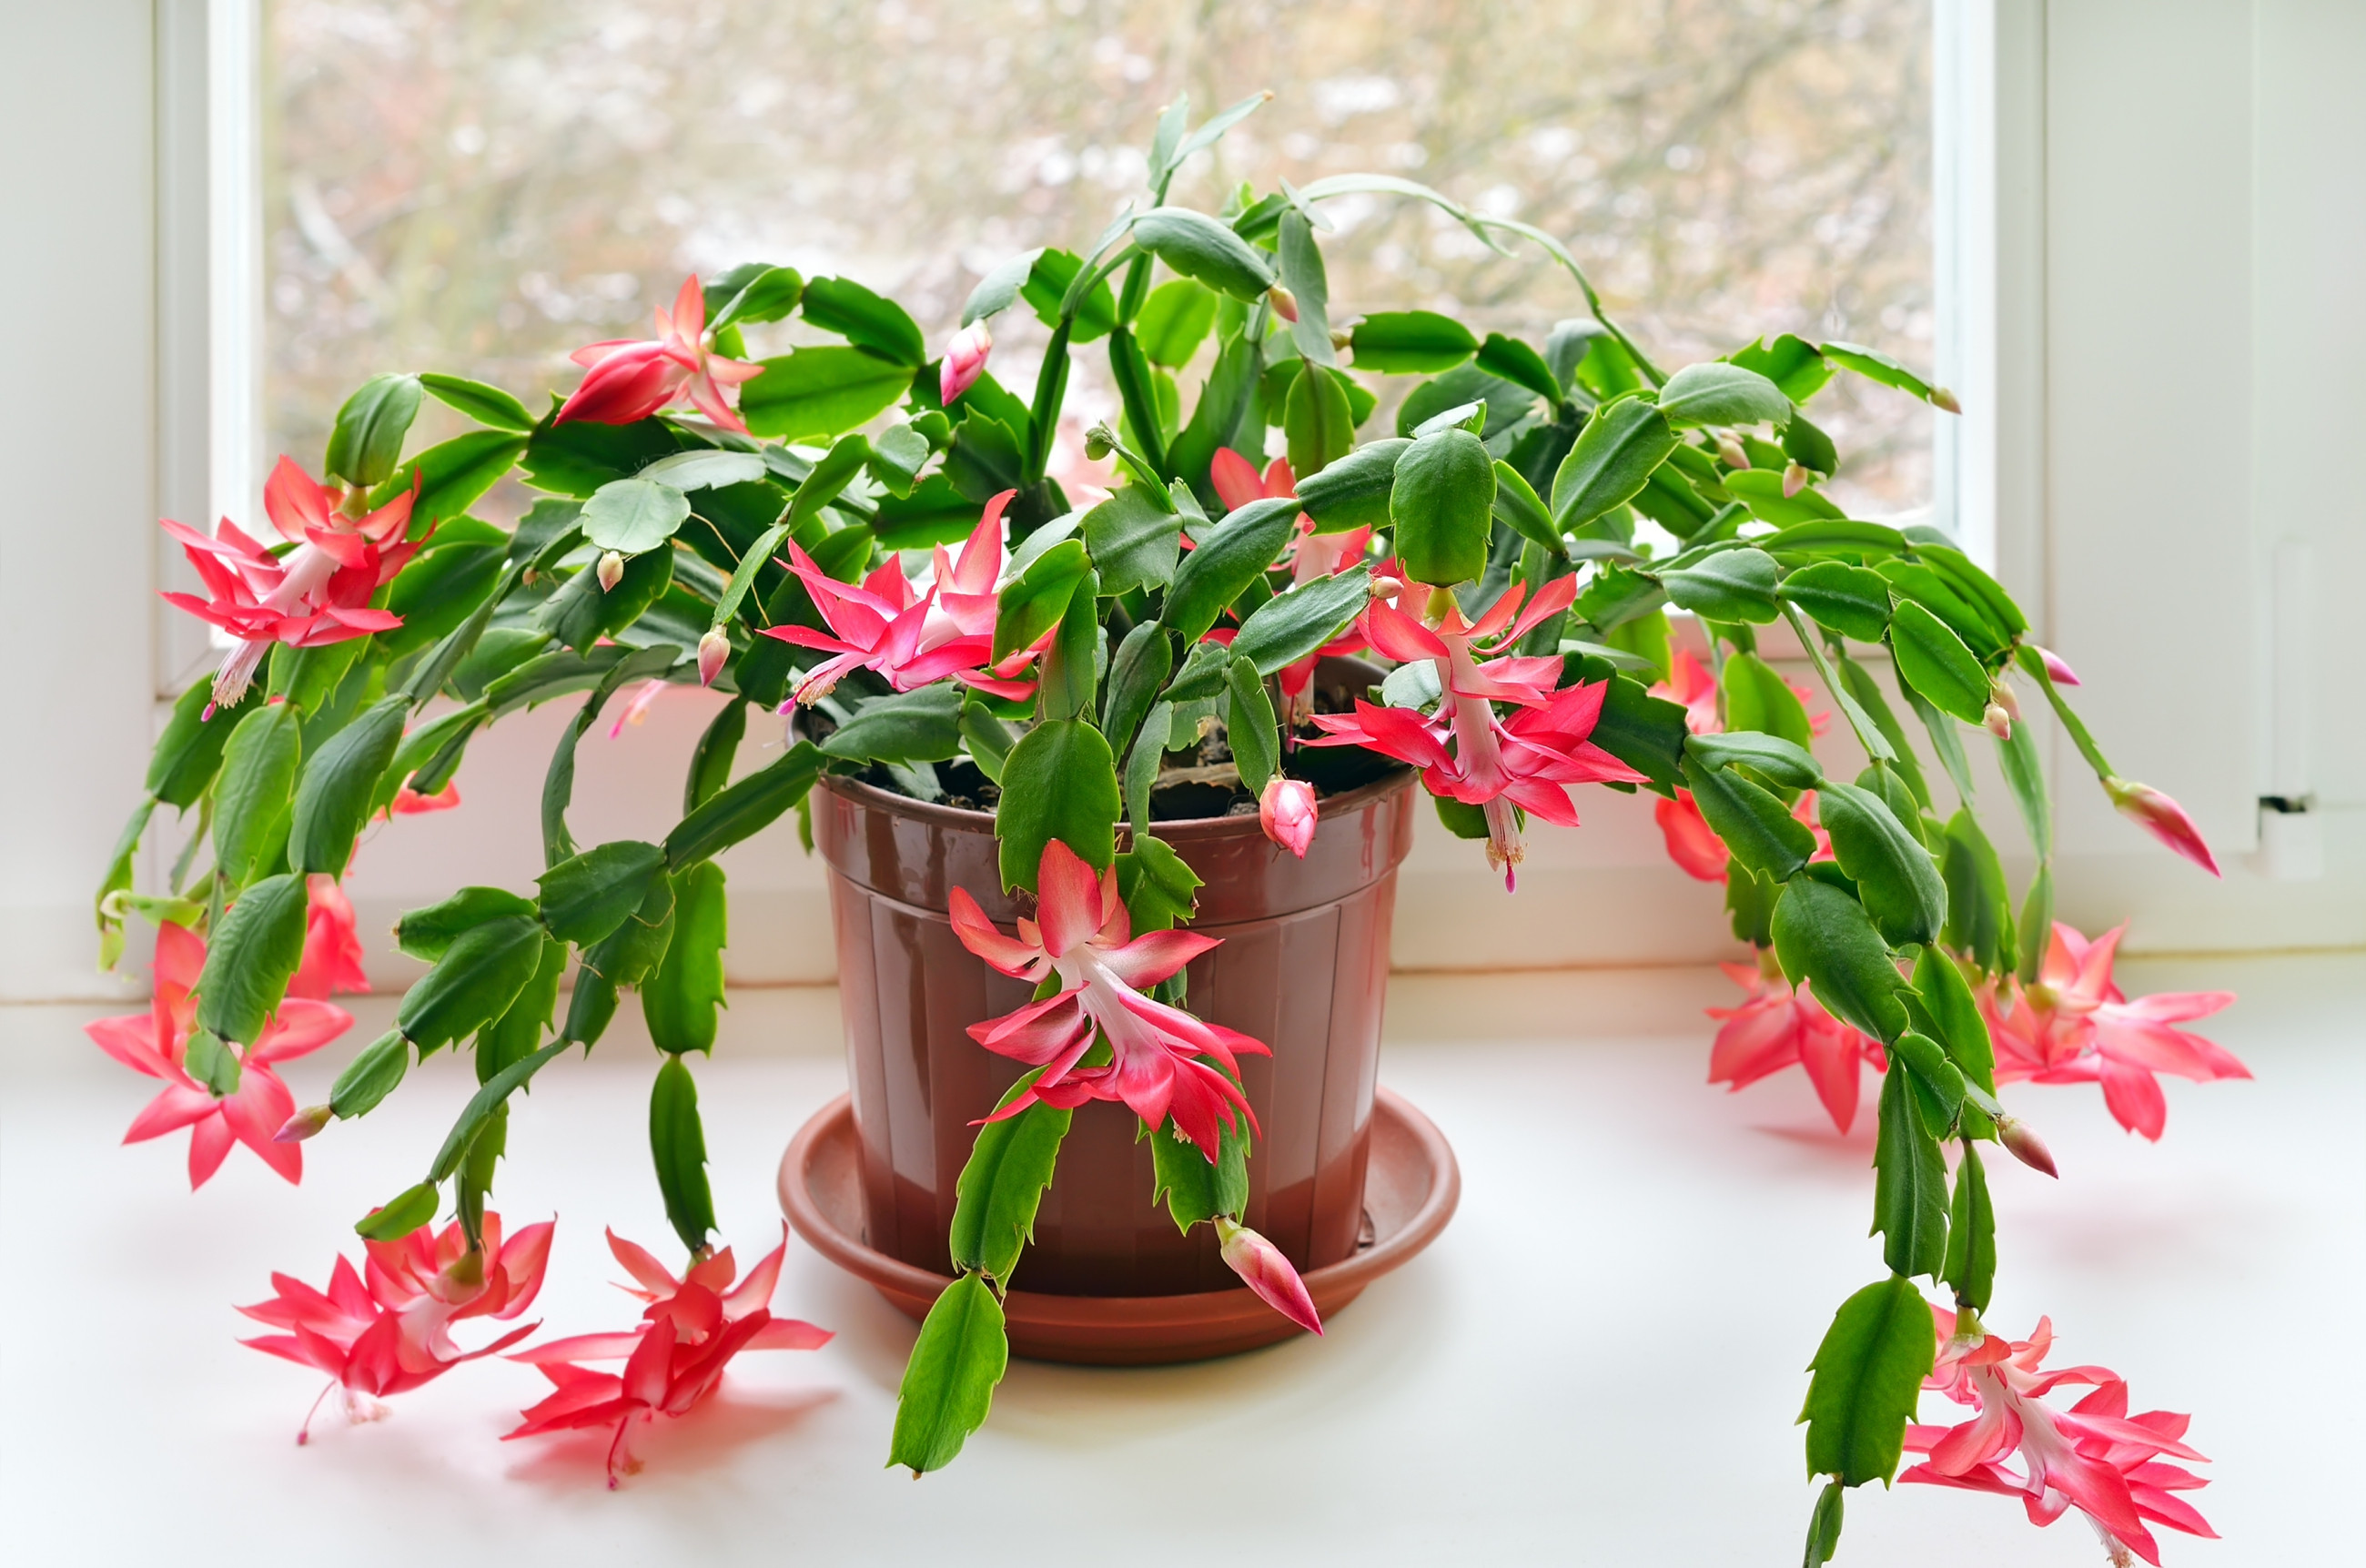 Christmas Catus Flower  Christmas Cactus How To Care For Holiday Cacti